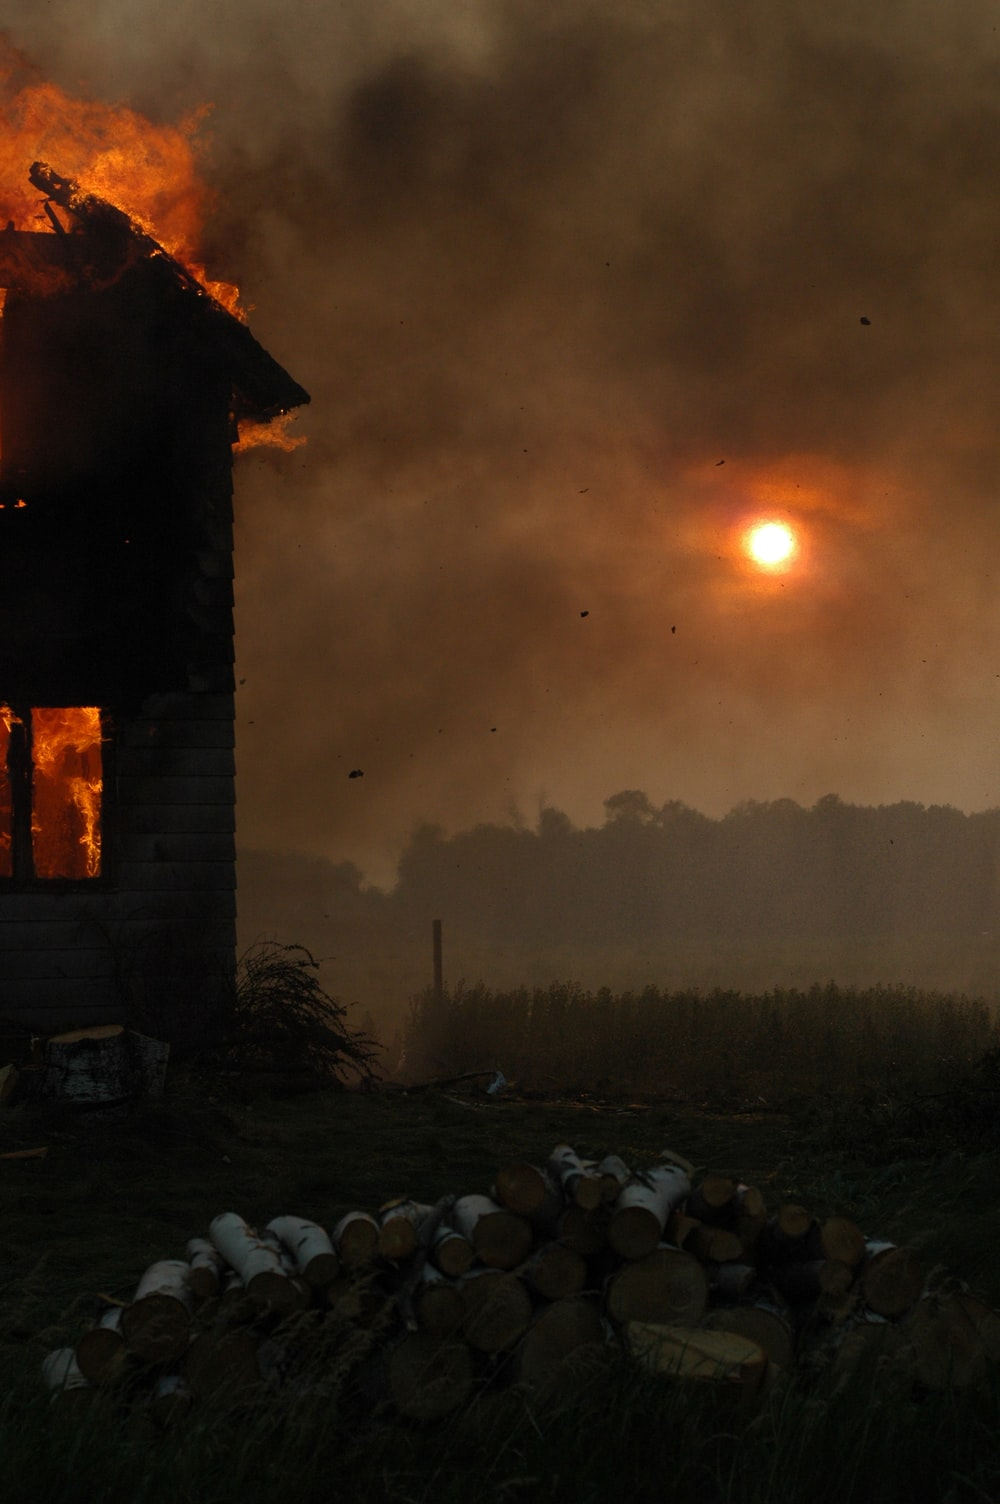 time lapse photography of a burning building during golden hour